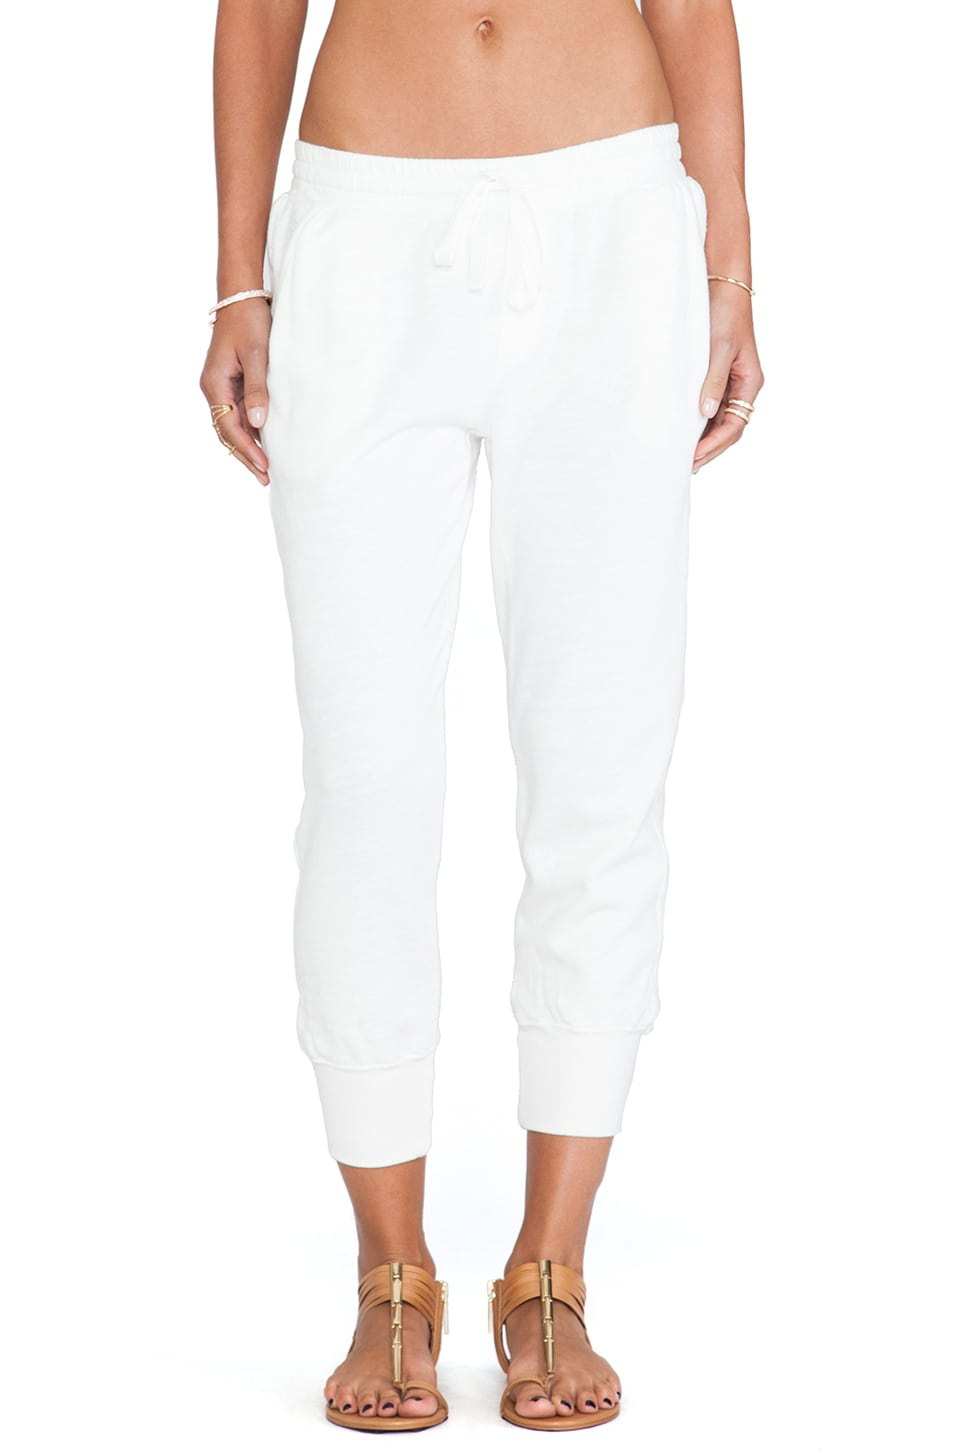 Soft Joie Rayo Sweatpants in Porcelain